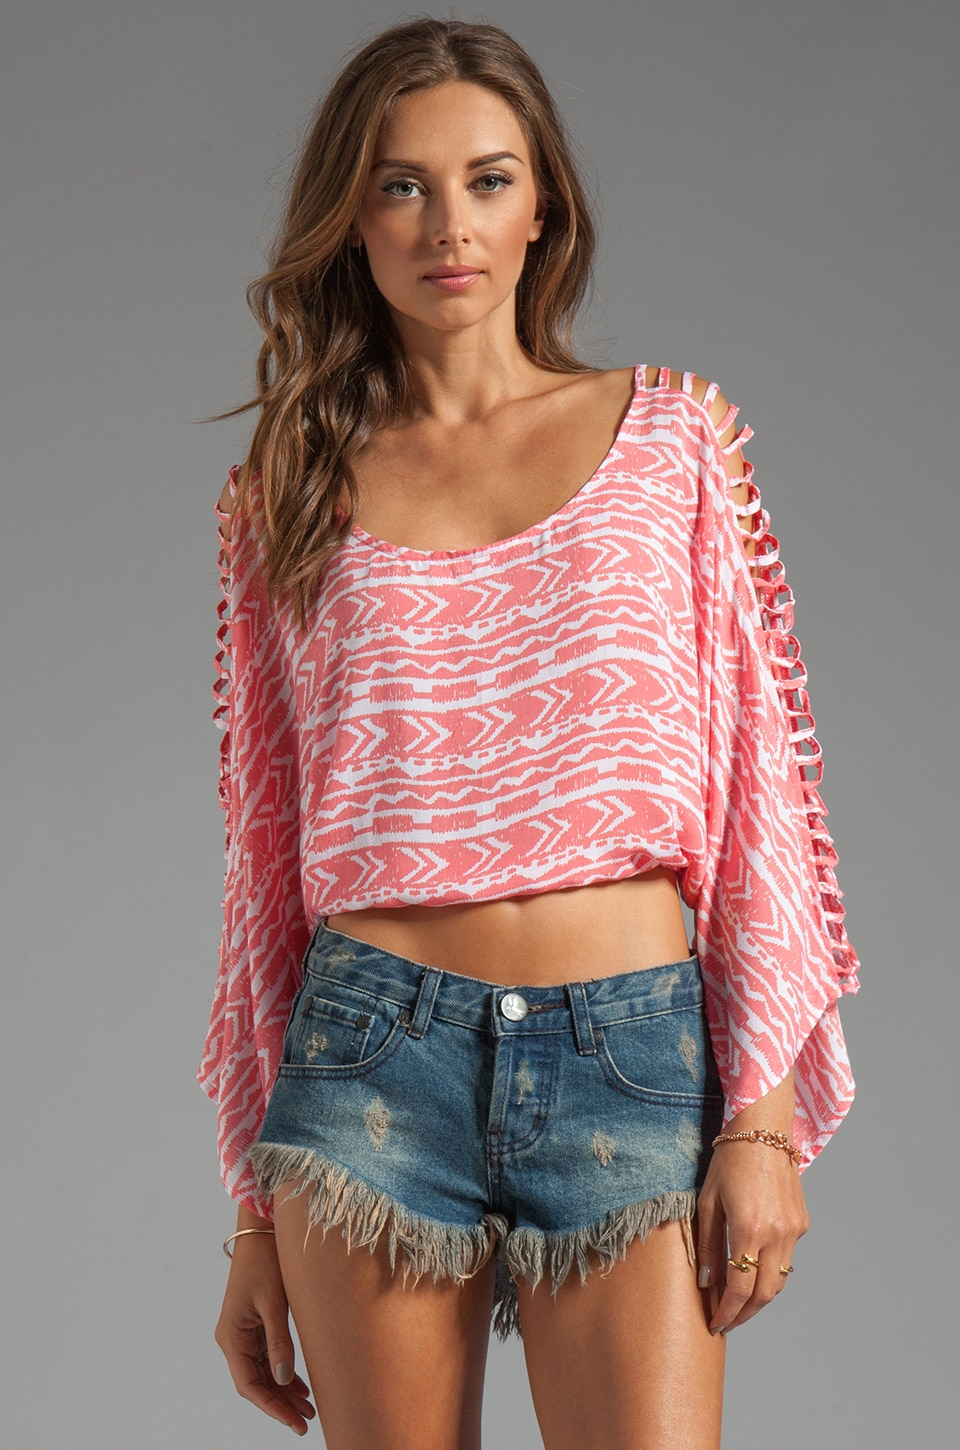 Tiare Hawaii Phoenix Top in Coral Totem